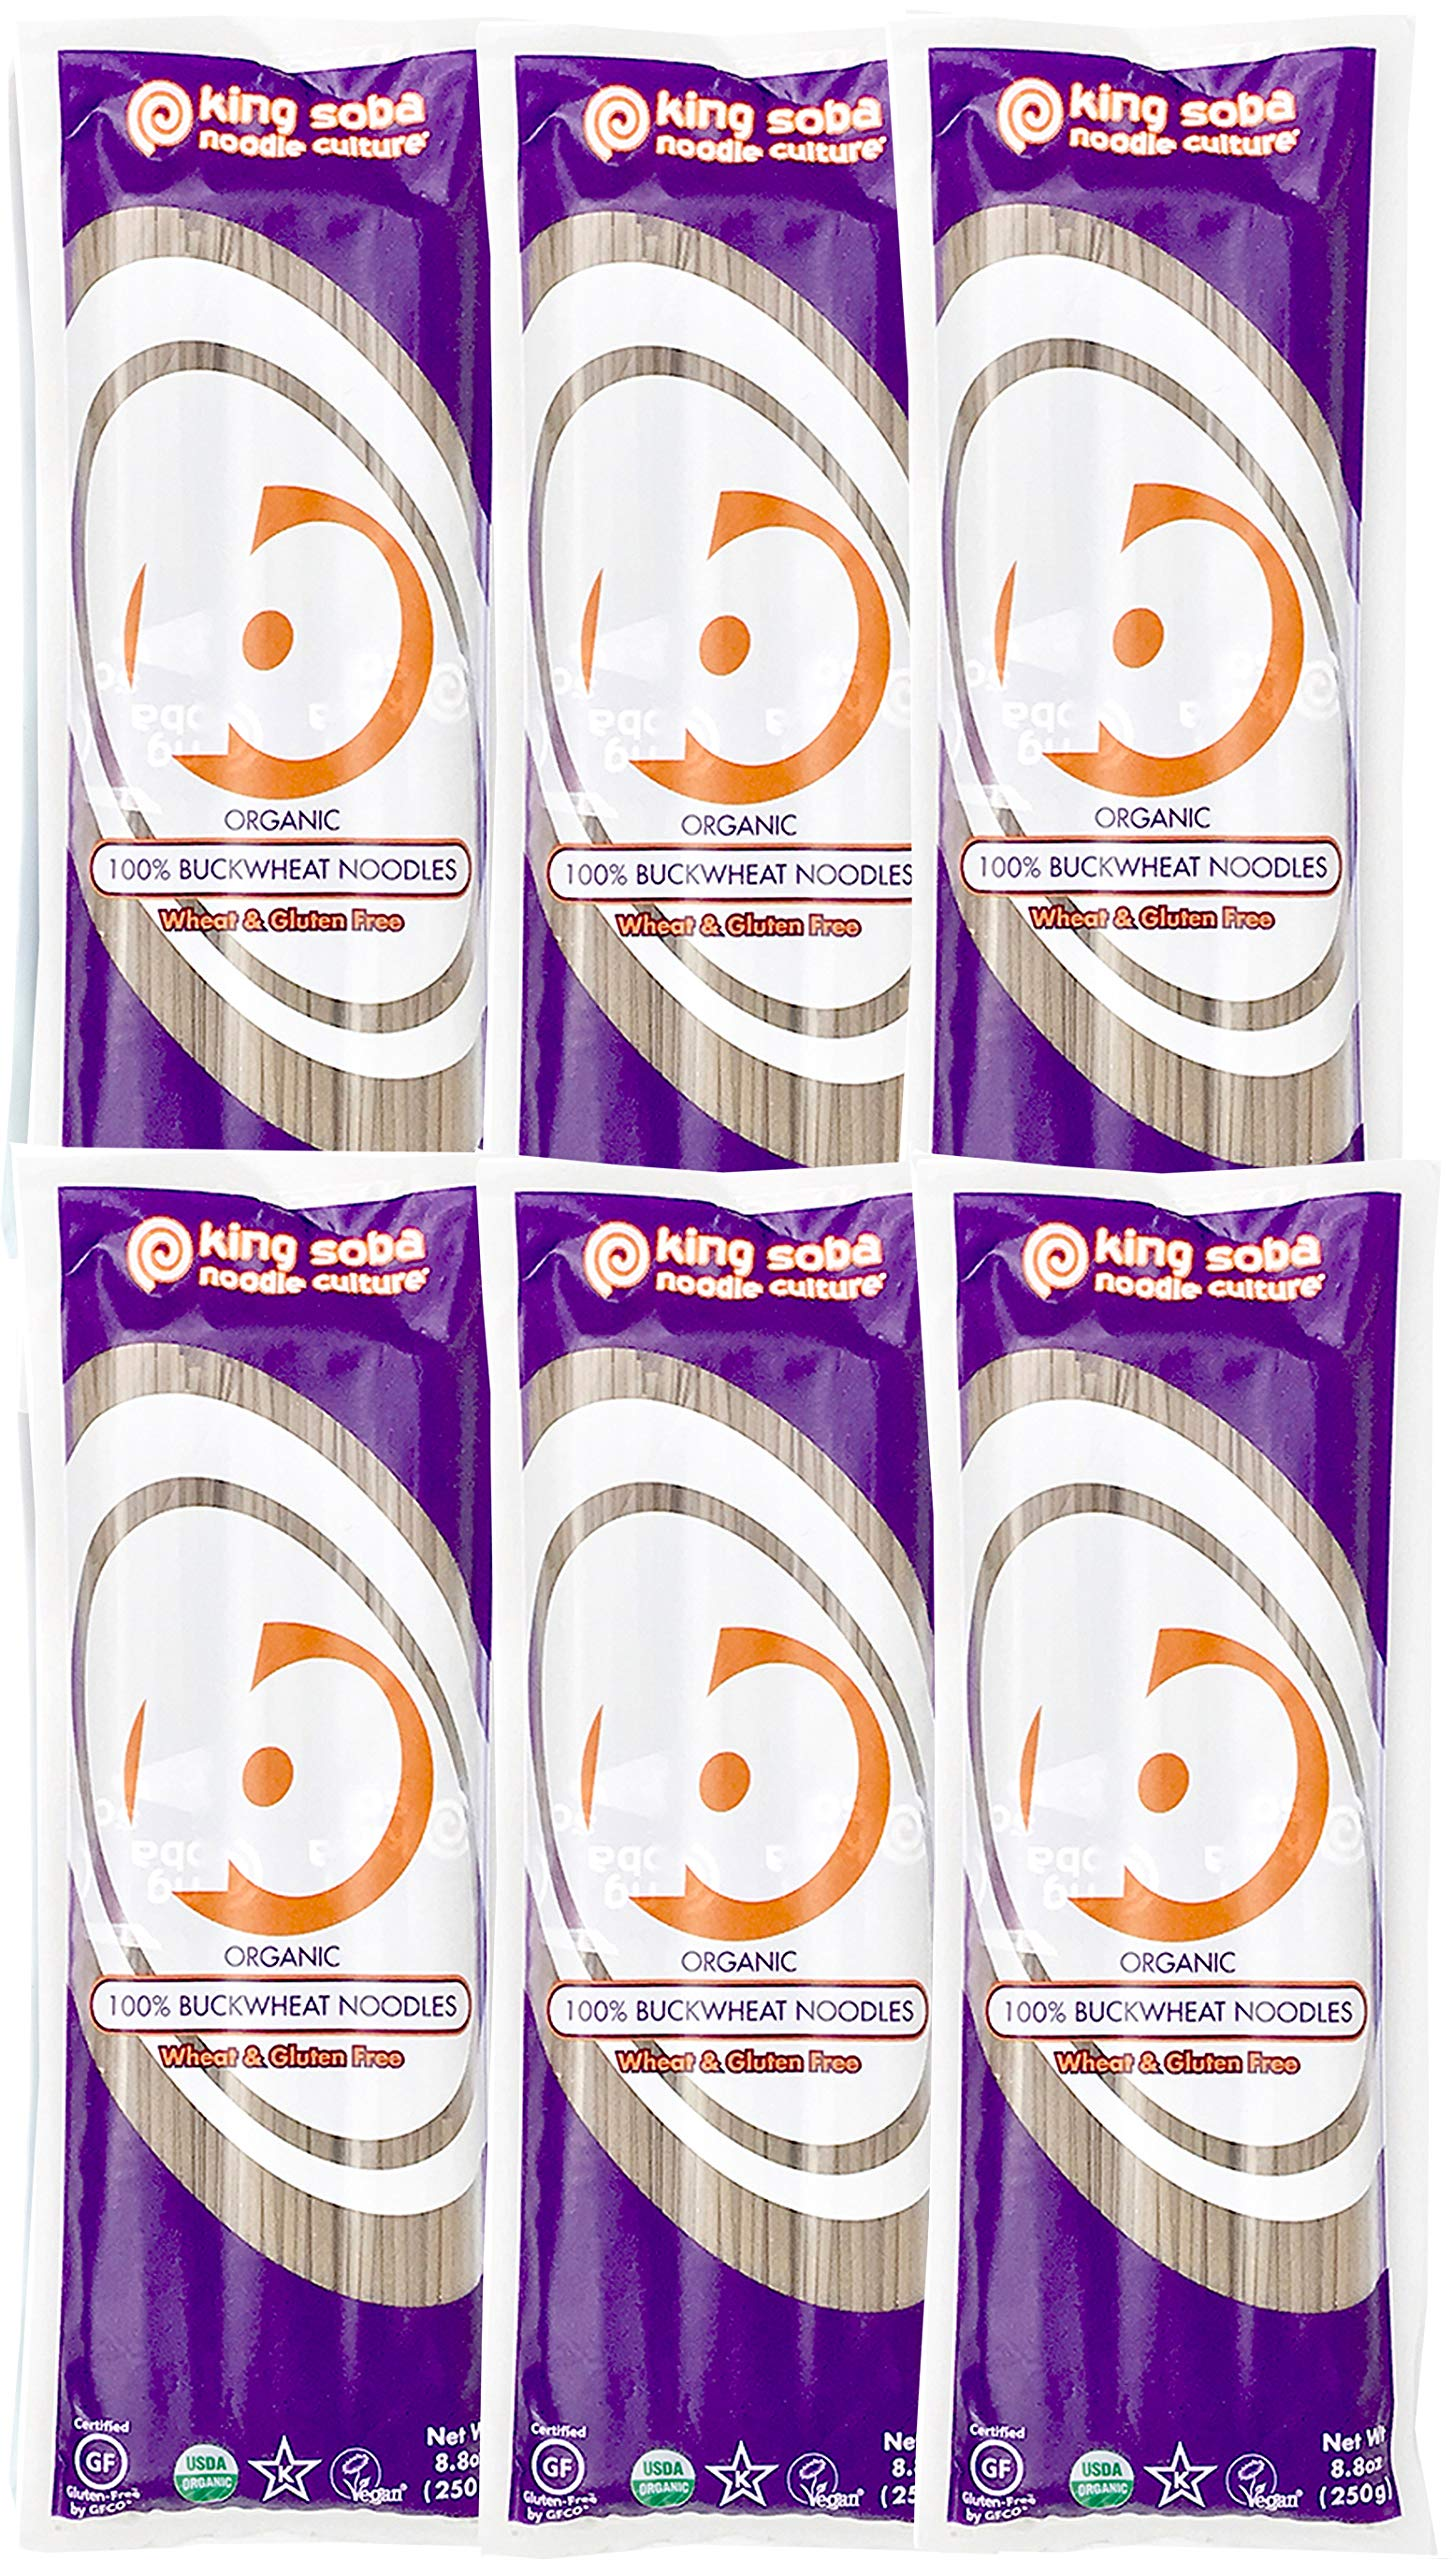 King Soba 6-PACK Gluten Free & Organic 100% Buckwheat Pasta Noodles 8.8oz - 3 Servings Per Pack by King Soba Noodle Culture